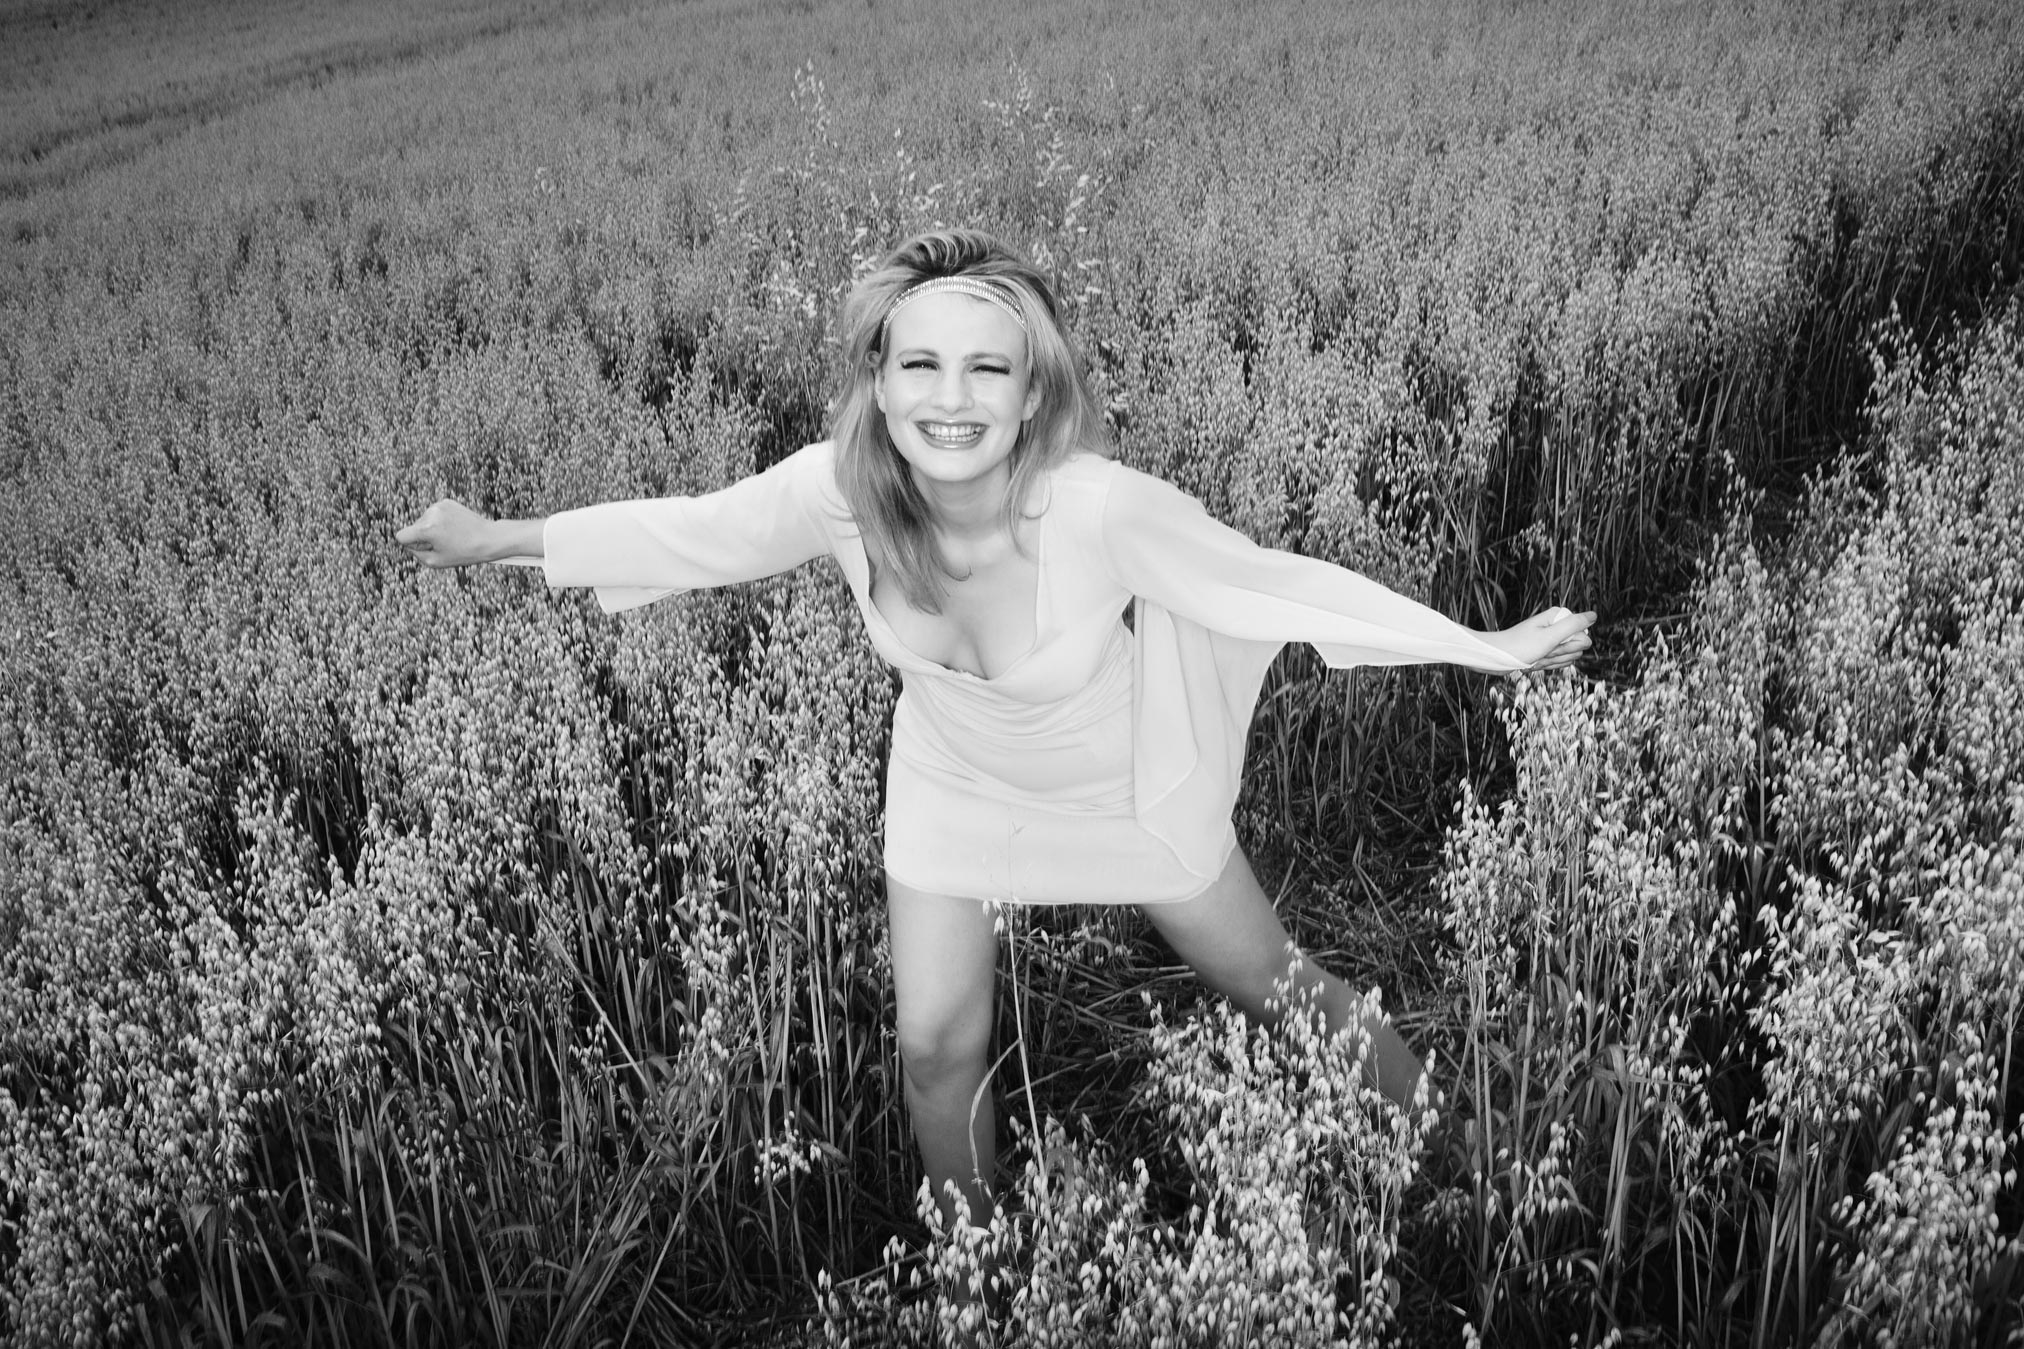 Chloe-Jasmine Whichello in a field of Barley in Somerset. Monochrome